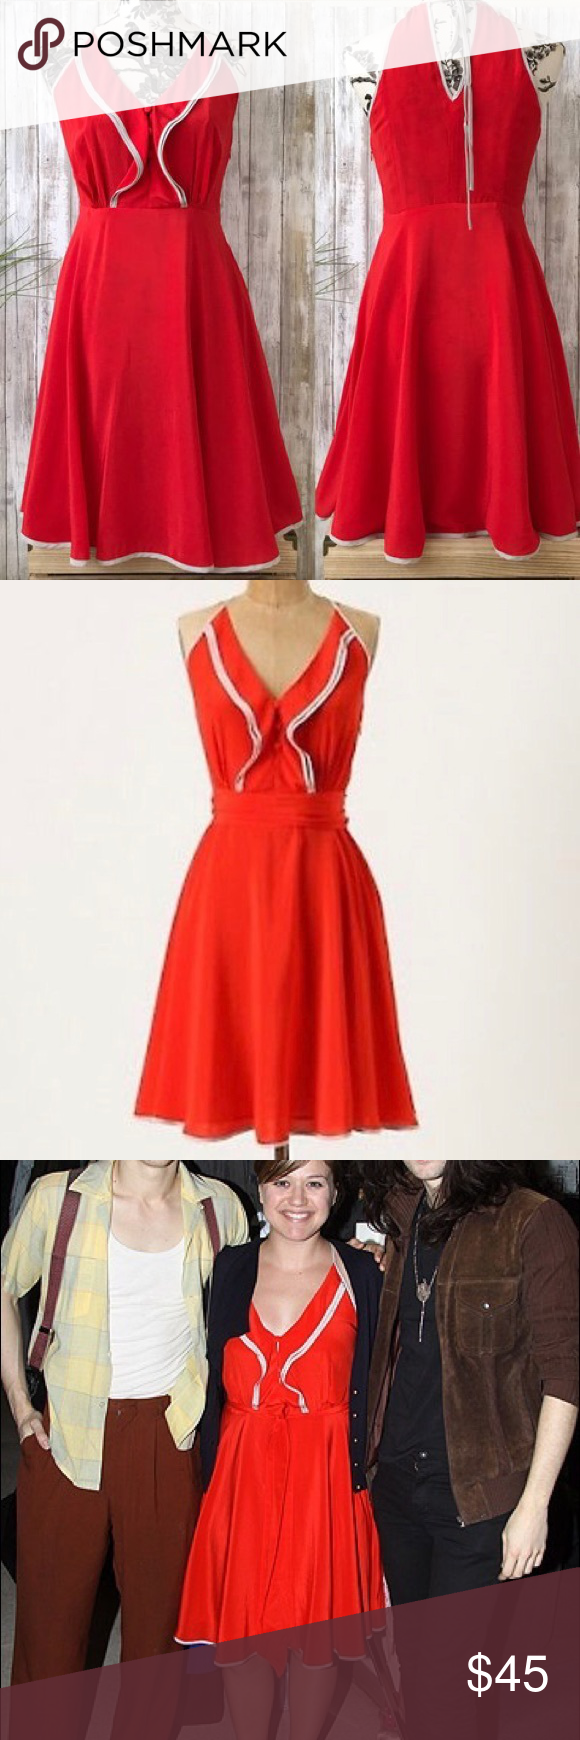 bd00346e3aa17 Anthropologie, Girls from Savoy Gull Wing dress Flowy, A-line, red, gull  wing dress from Anthropologie. Skirt goes to just below the knees.